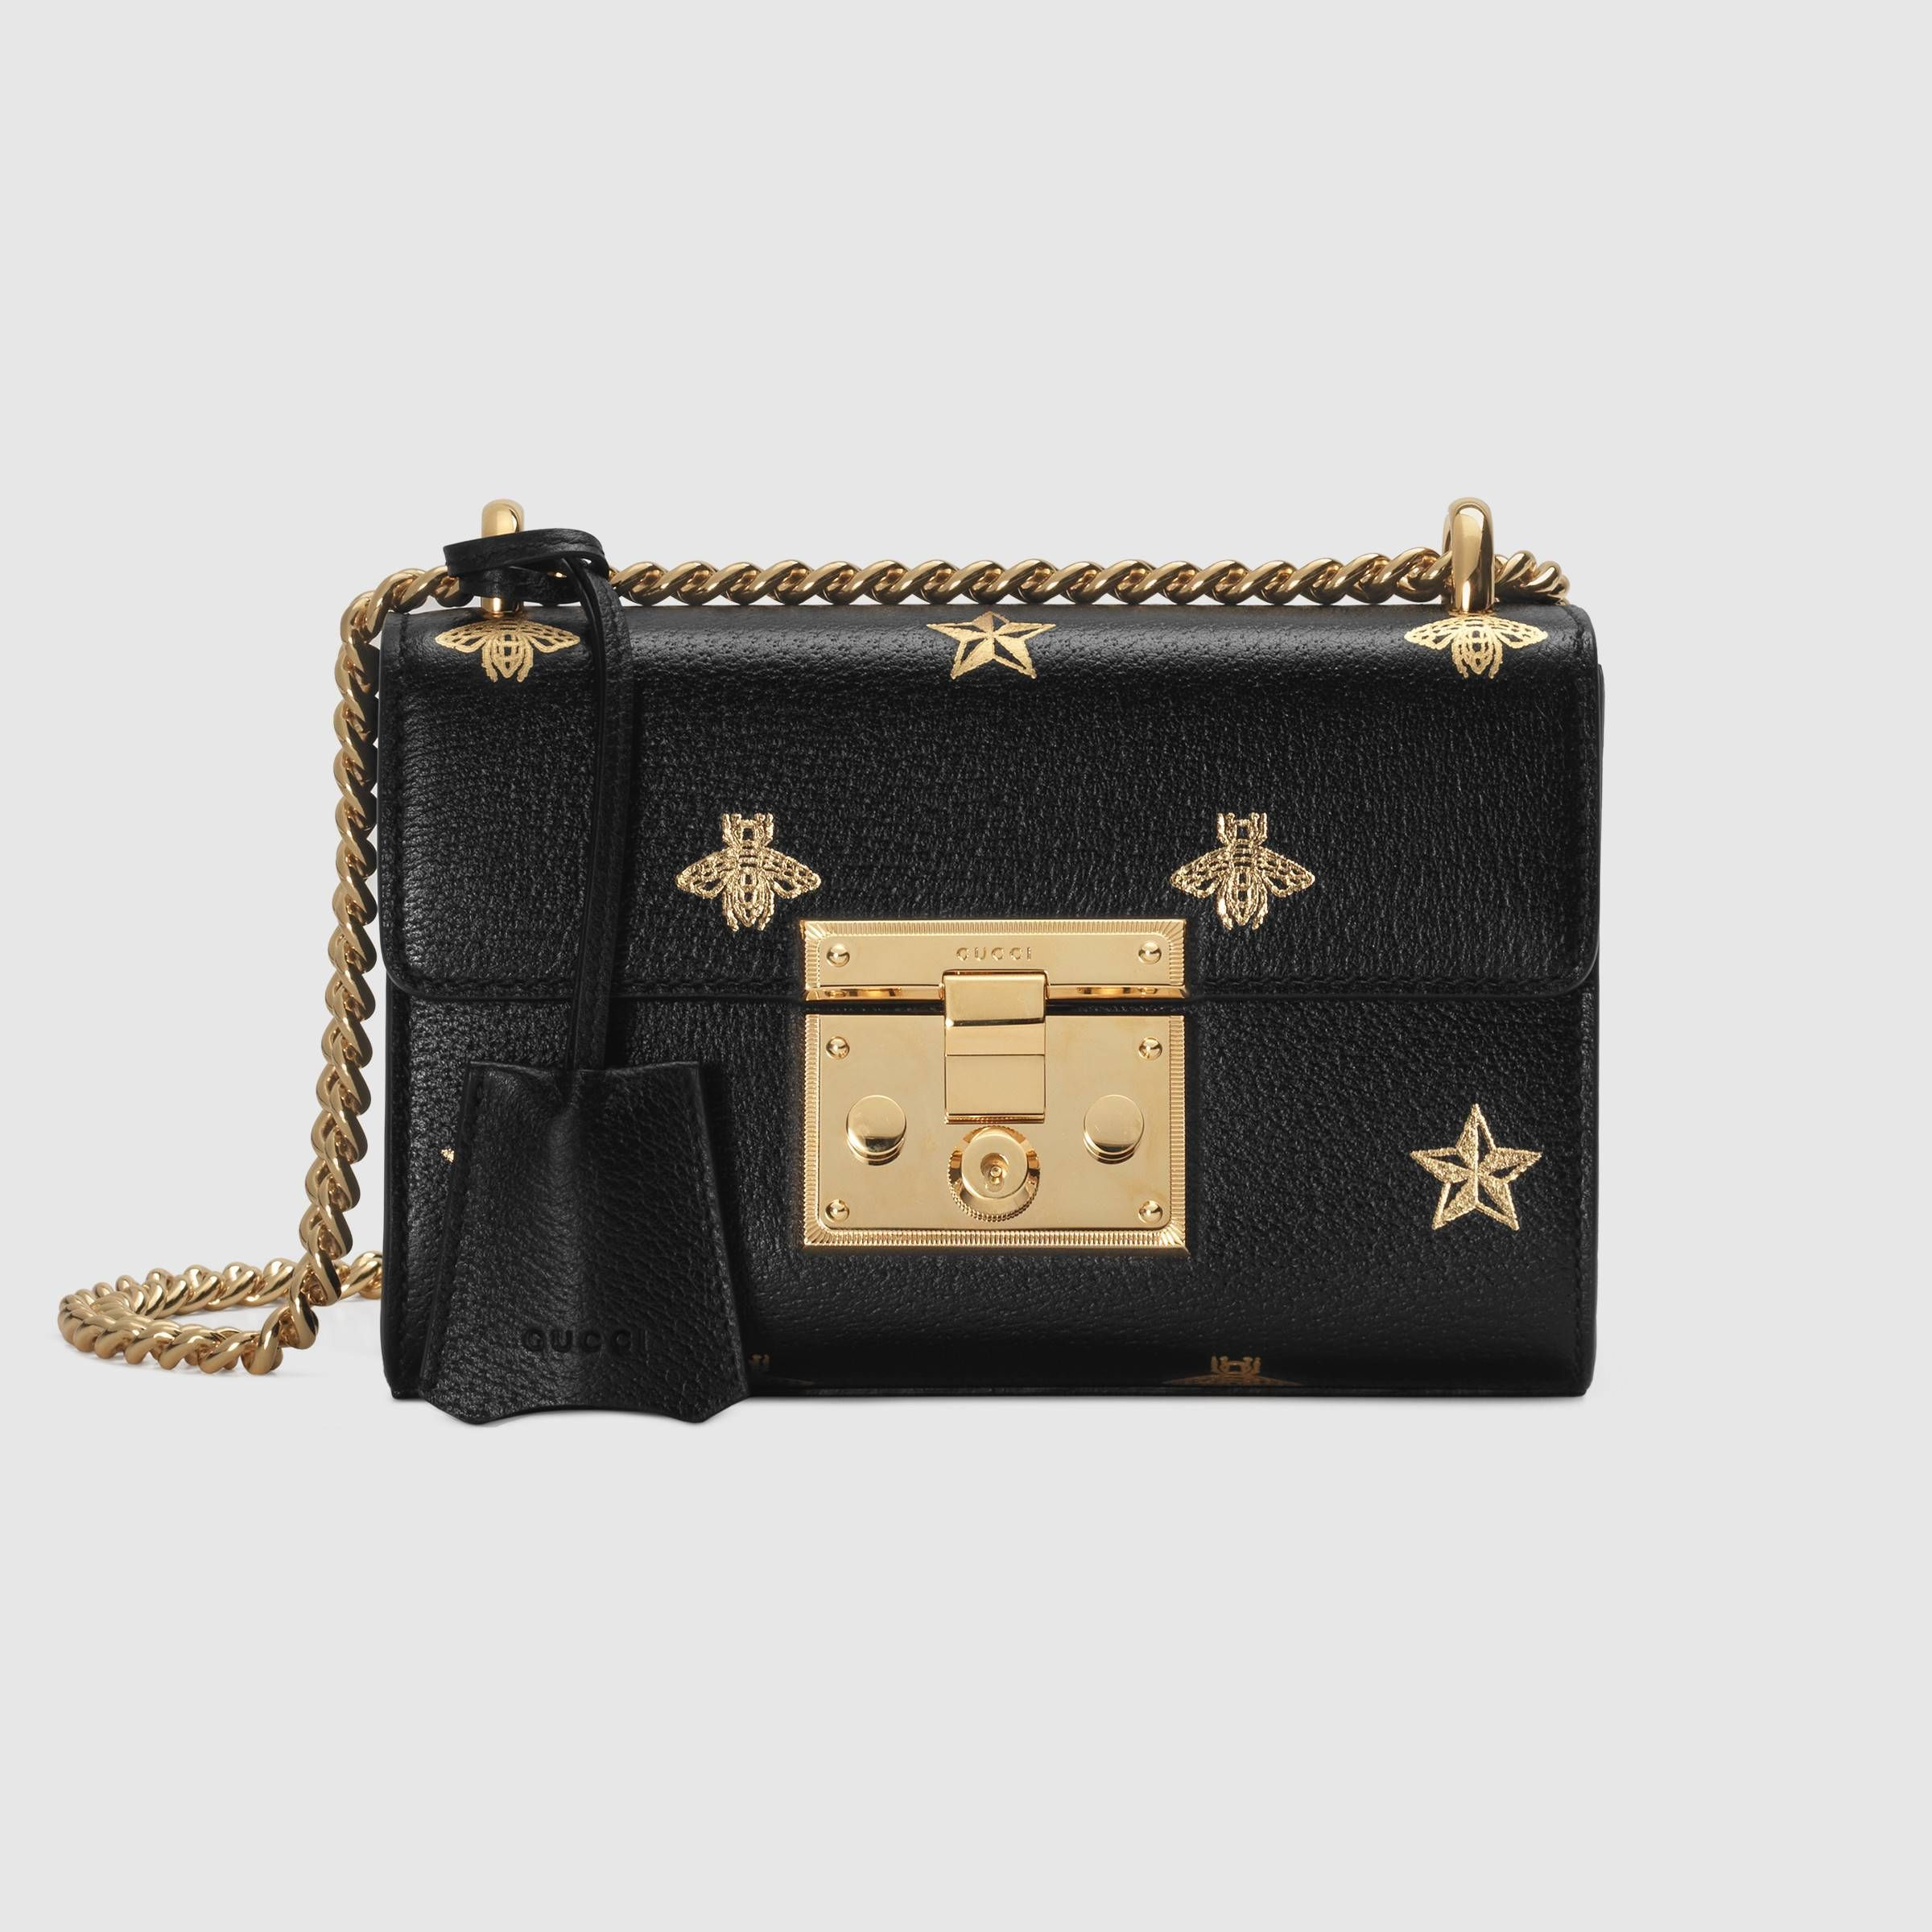 06764c543bdf Padlock Bee Star small shoulder bag in Black leather with gold bees and  stars print | Gucci Women's Mini Bags